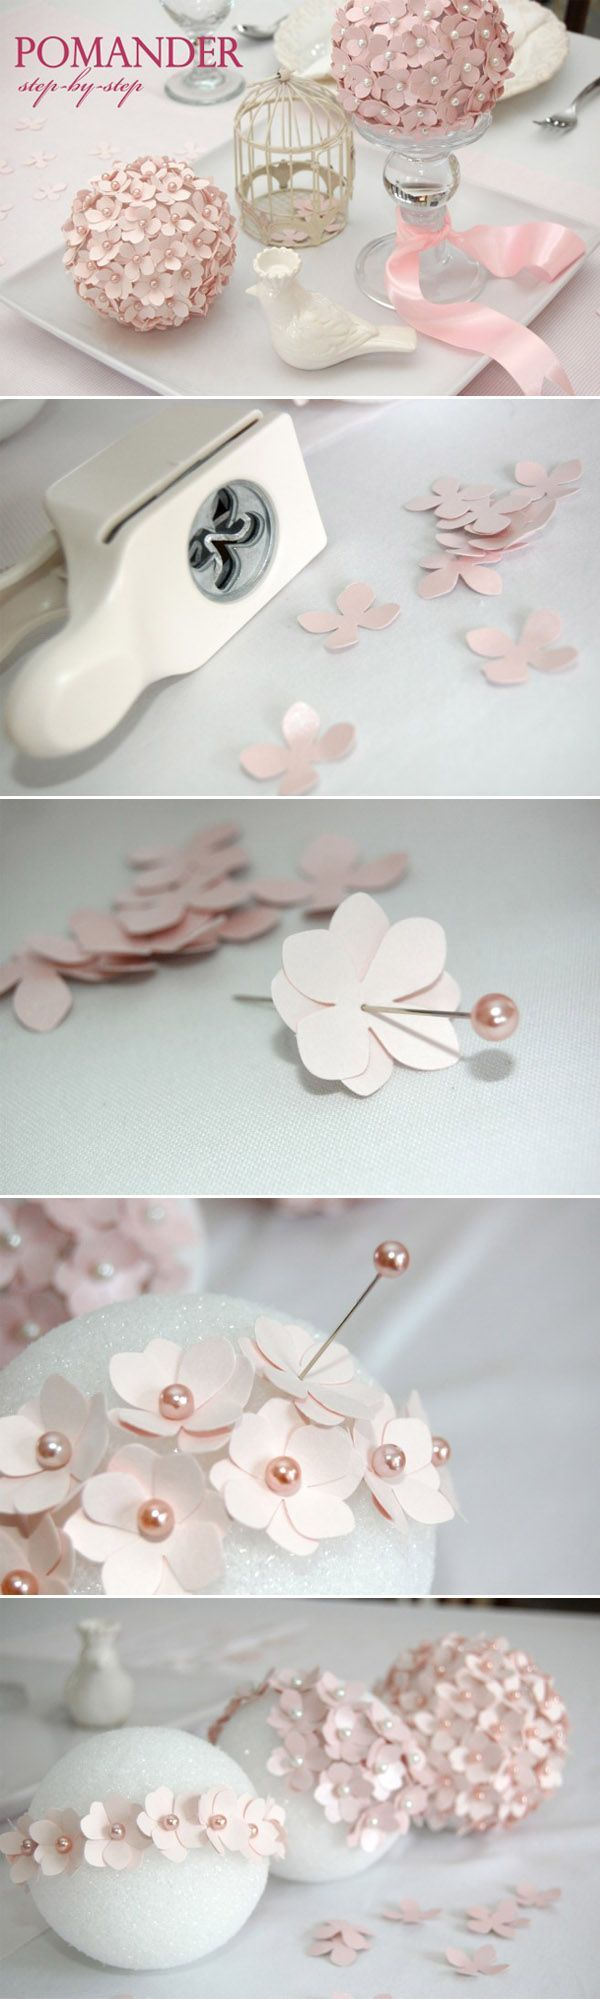 flower-ball-diy-wedding-centerpiece-idea